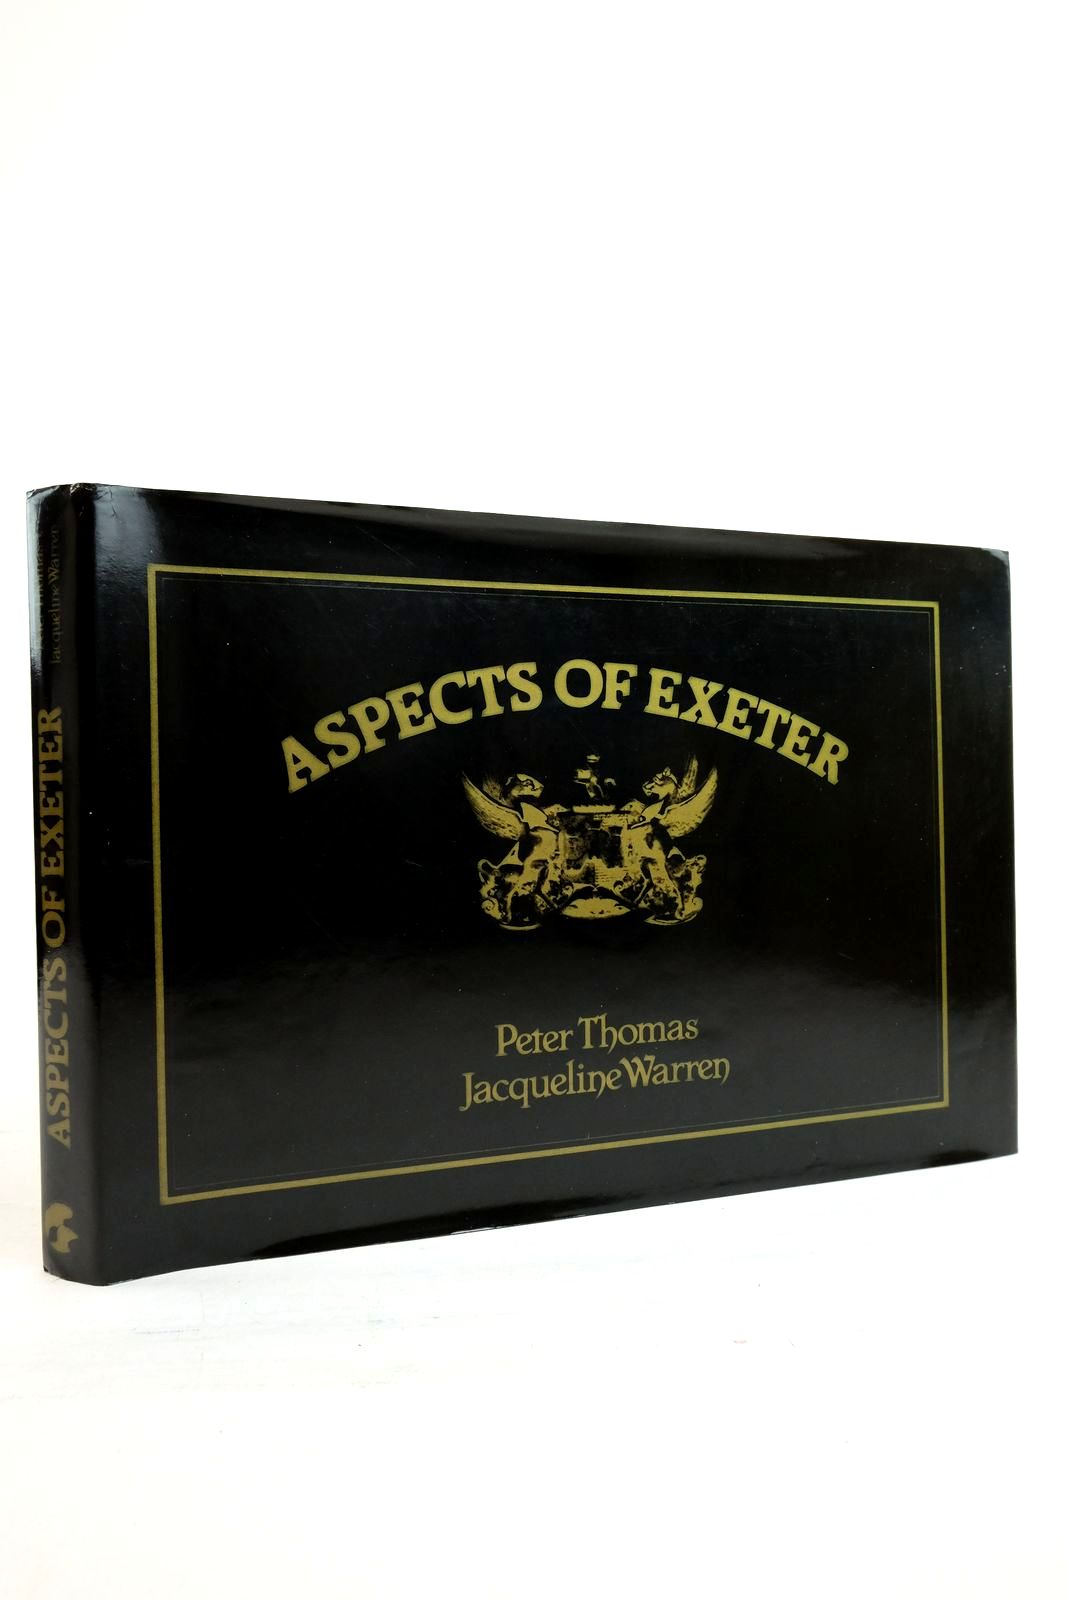 Photo of ASPECTS OF EXETER written by Thomas, Peter Warren, Jacqueline published by Baron Jay Ltd. (STOCK CODE: 2134883)  for sale by Stella & Rose's Books